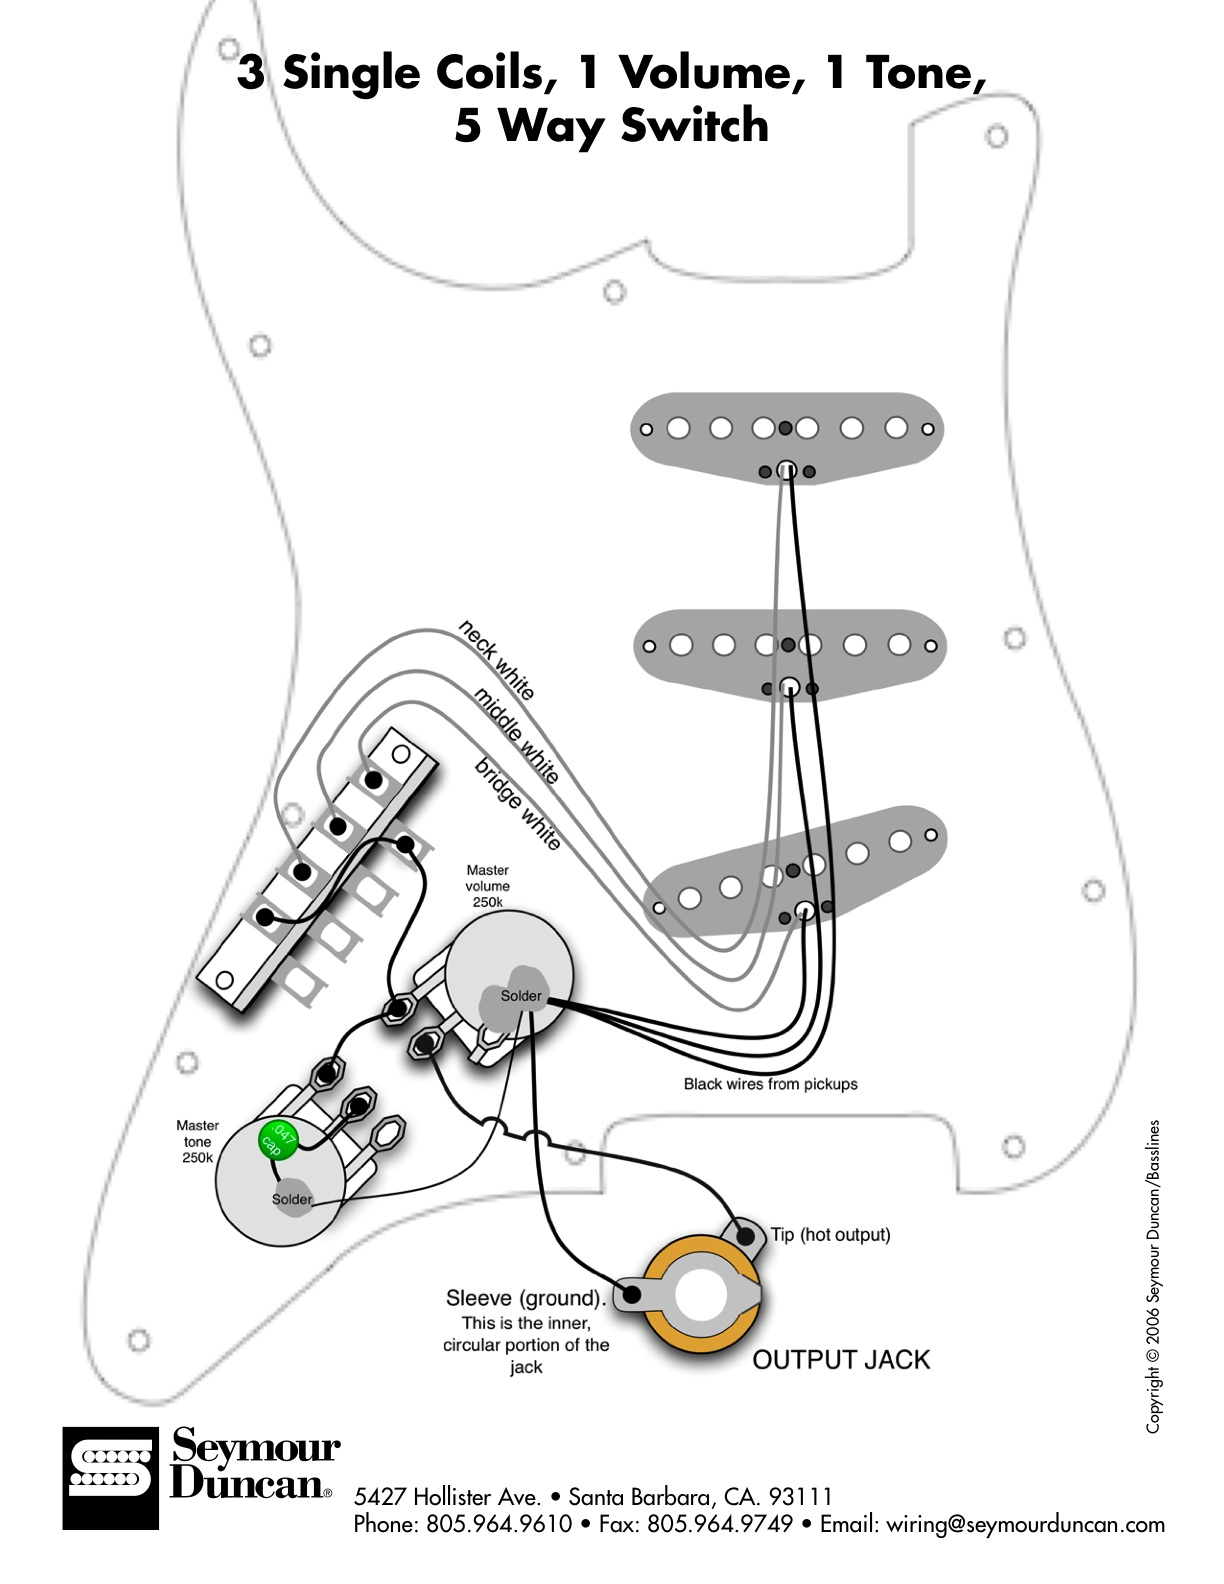 Fender Mexican Strat Wiring Diagram Diagram Base Website Wiring Diagram -  SEQUENCEDIAGRAM.ITASEINAUDI.ITDiagram Base Website Full Edition